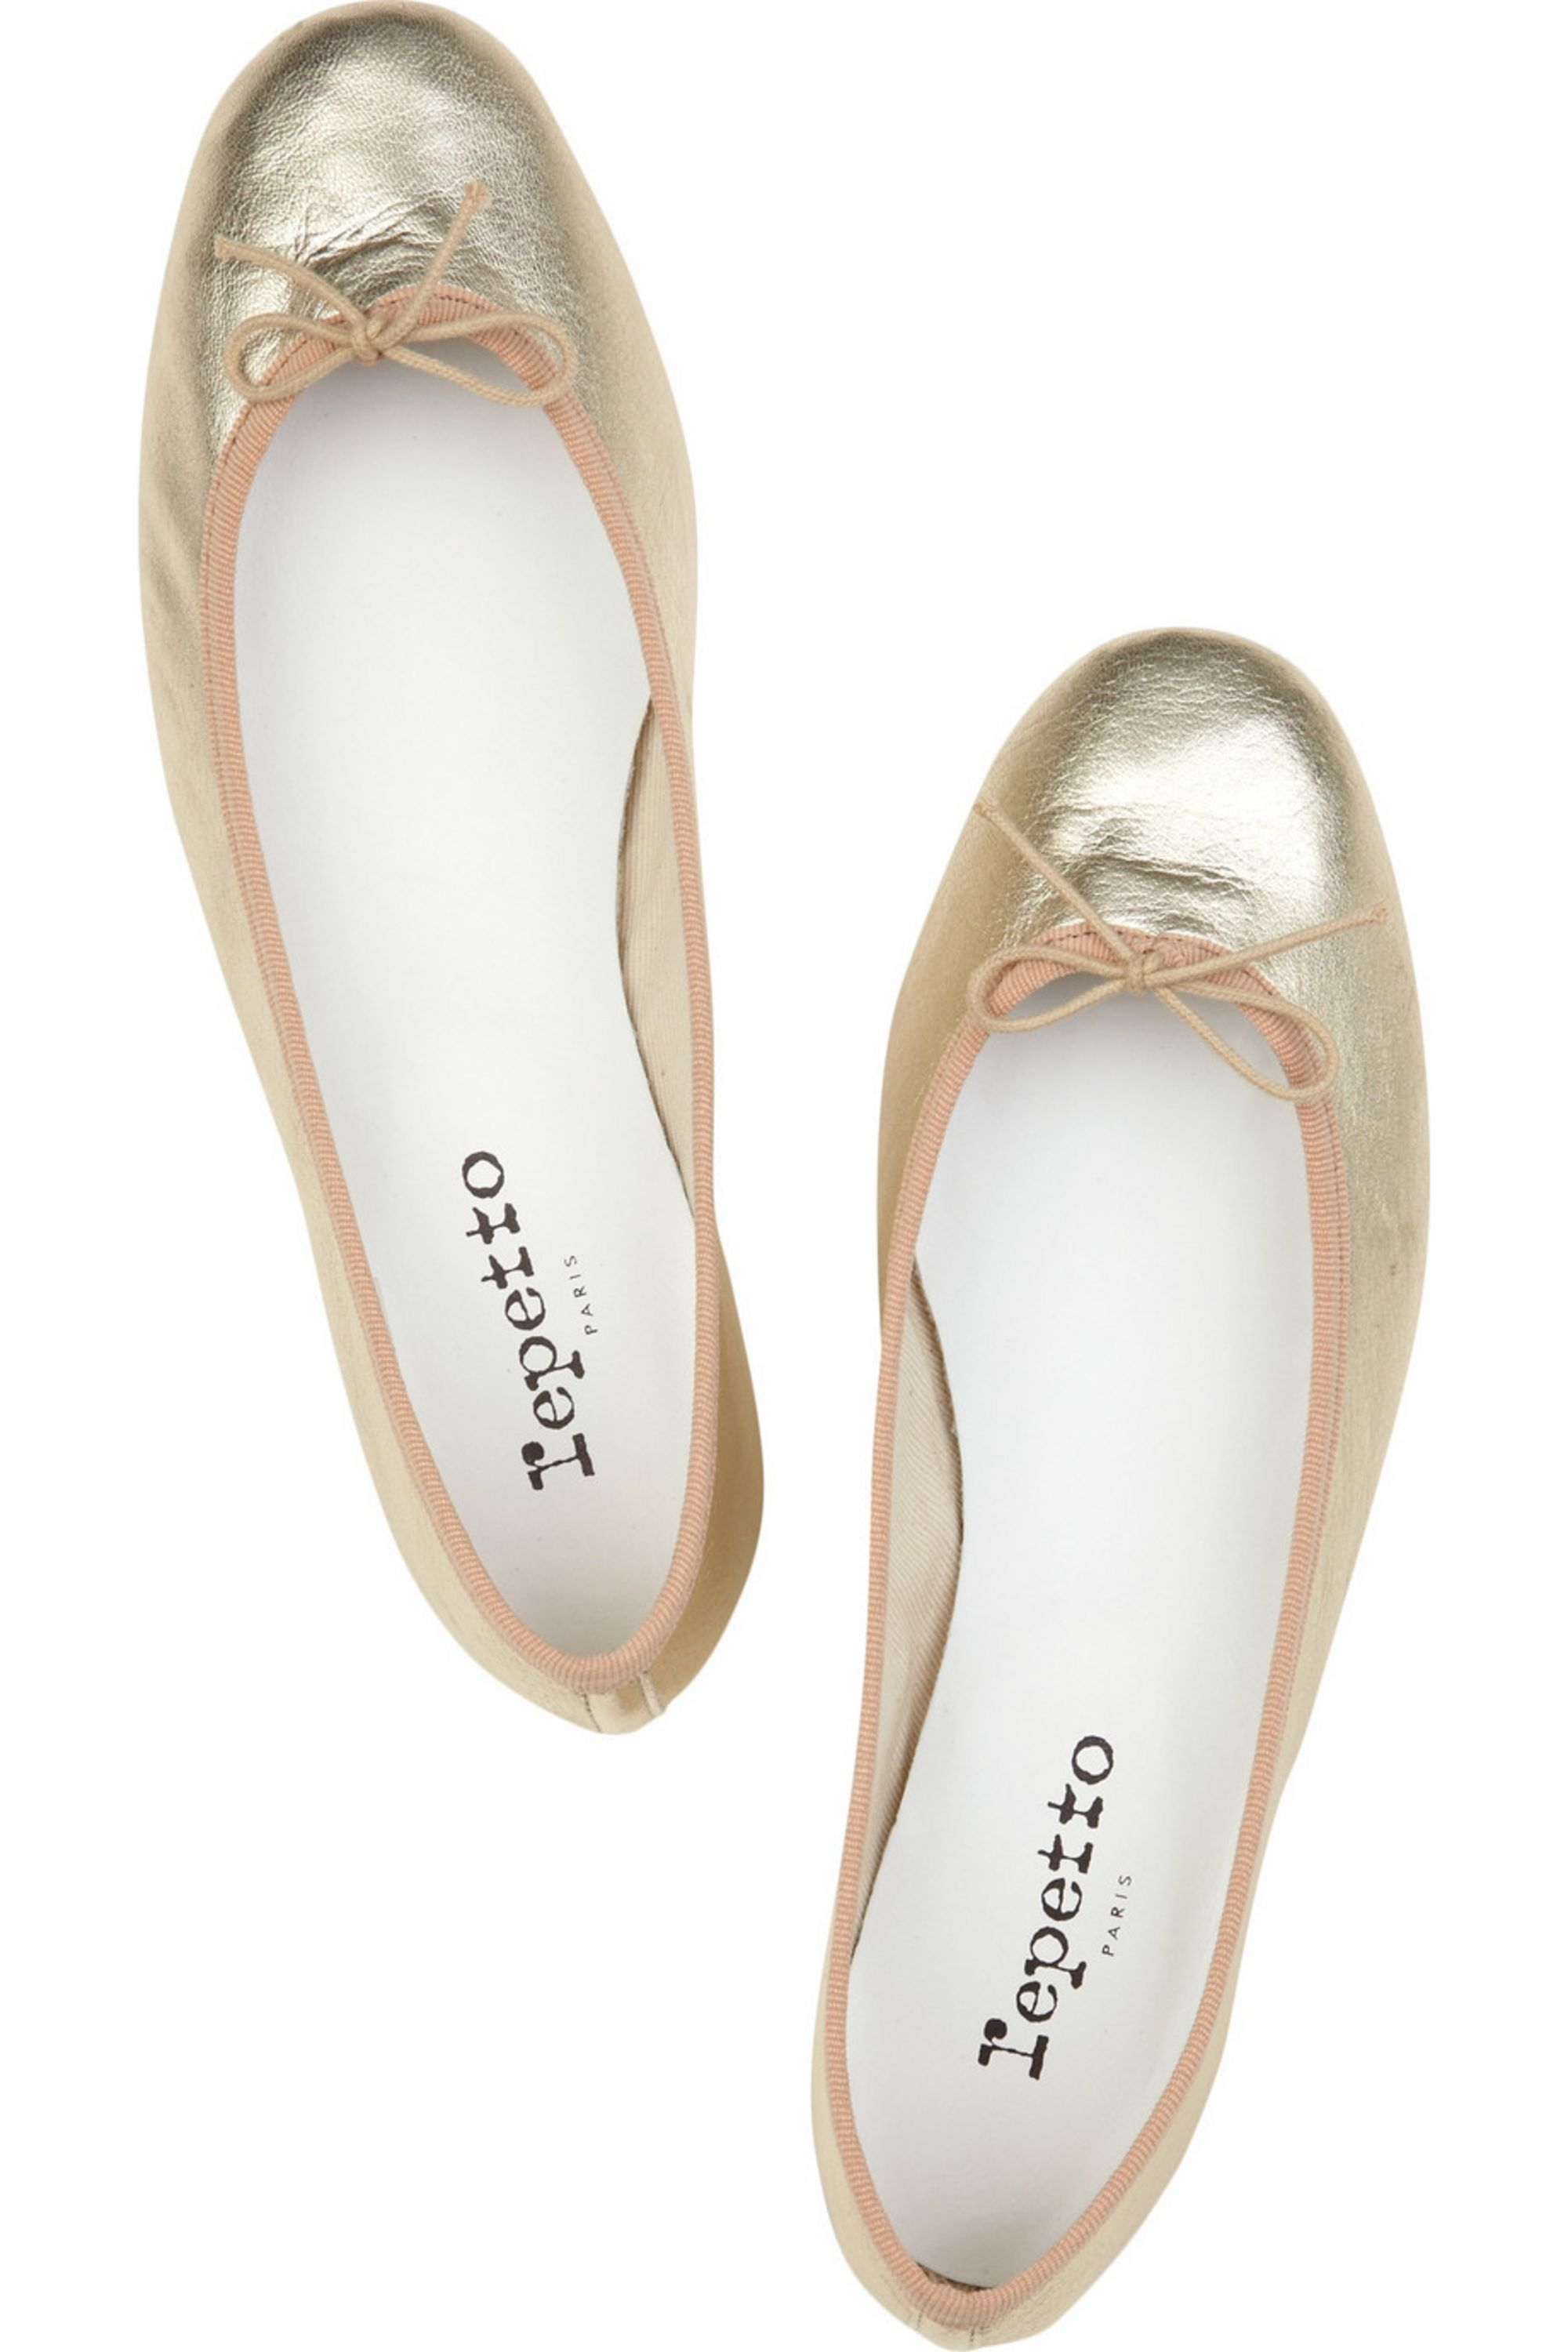 Repetto BB metallic leather ballet flats